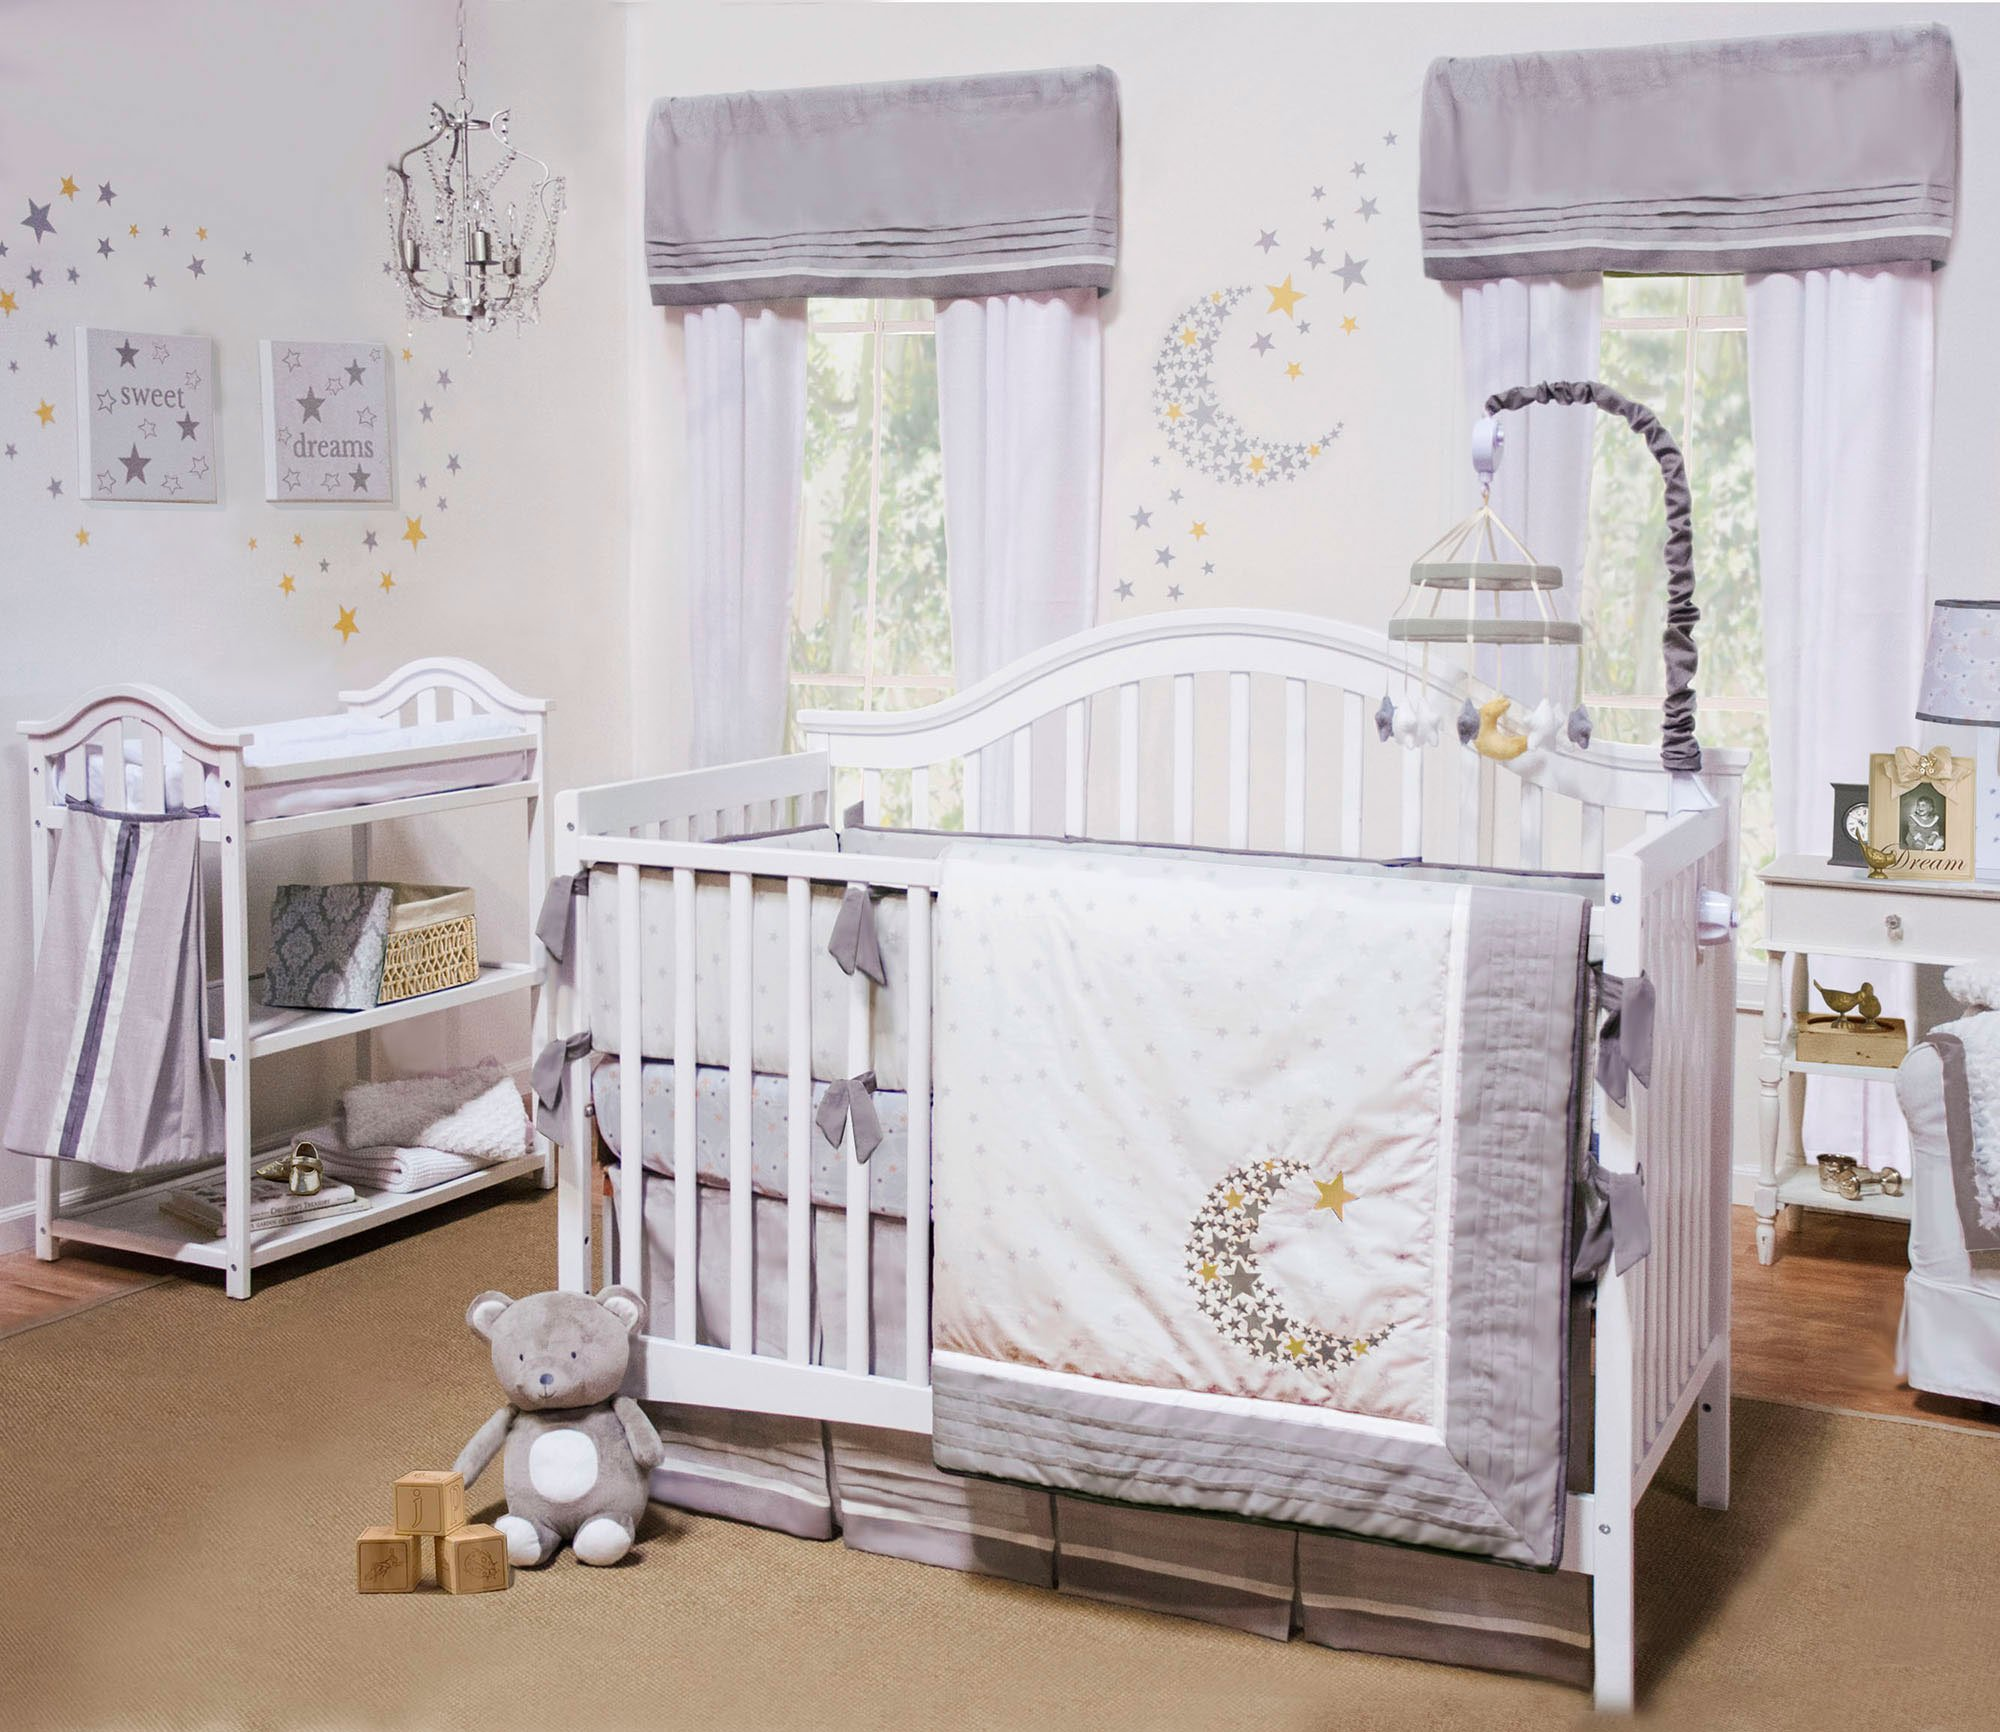 Nuit 4 Piece Baby Crib Bedding Set by Petite Tresor